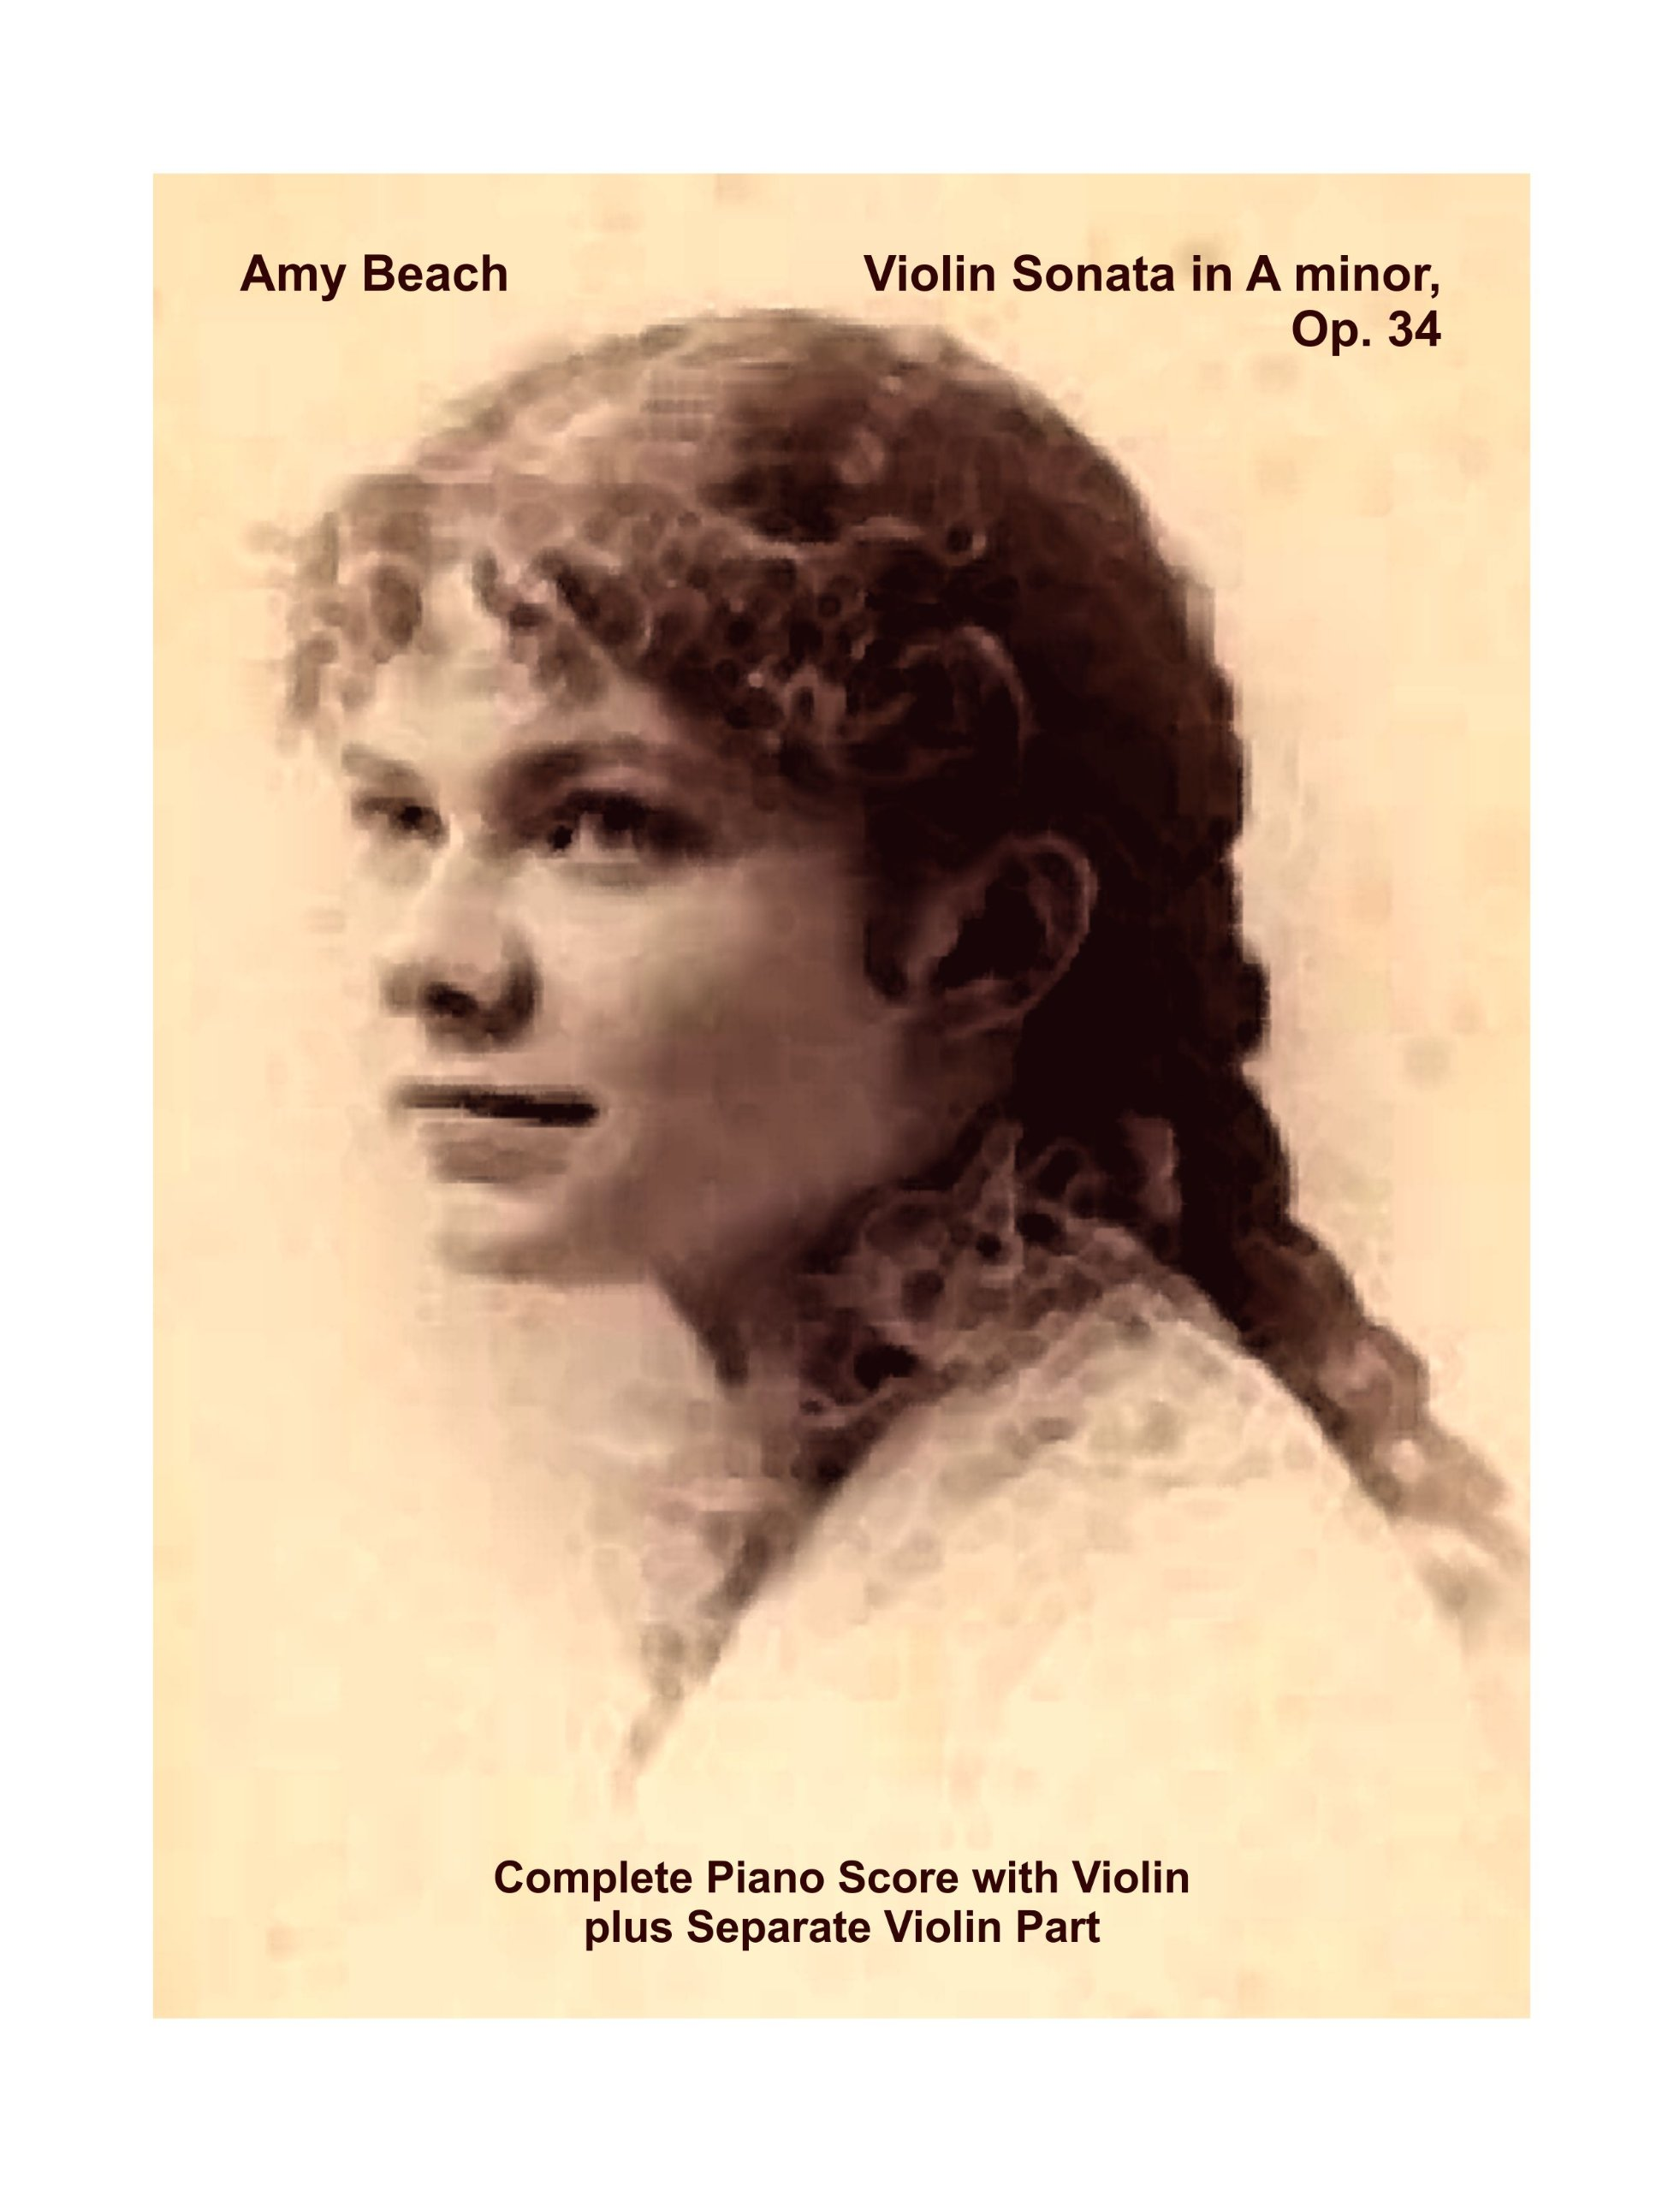 Download Violin Sonata in A minor, Op. 34 by Amy Beach Piano with Violin Score plus Violin Part. [Student Loose Leaf Facsimile Edition 2014. Re-Imaged from Original for Great Clarity.] ebook